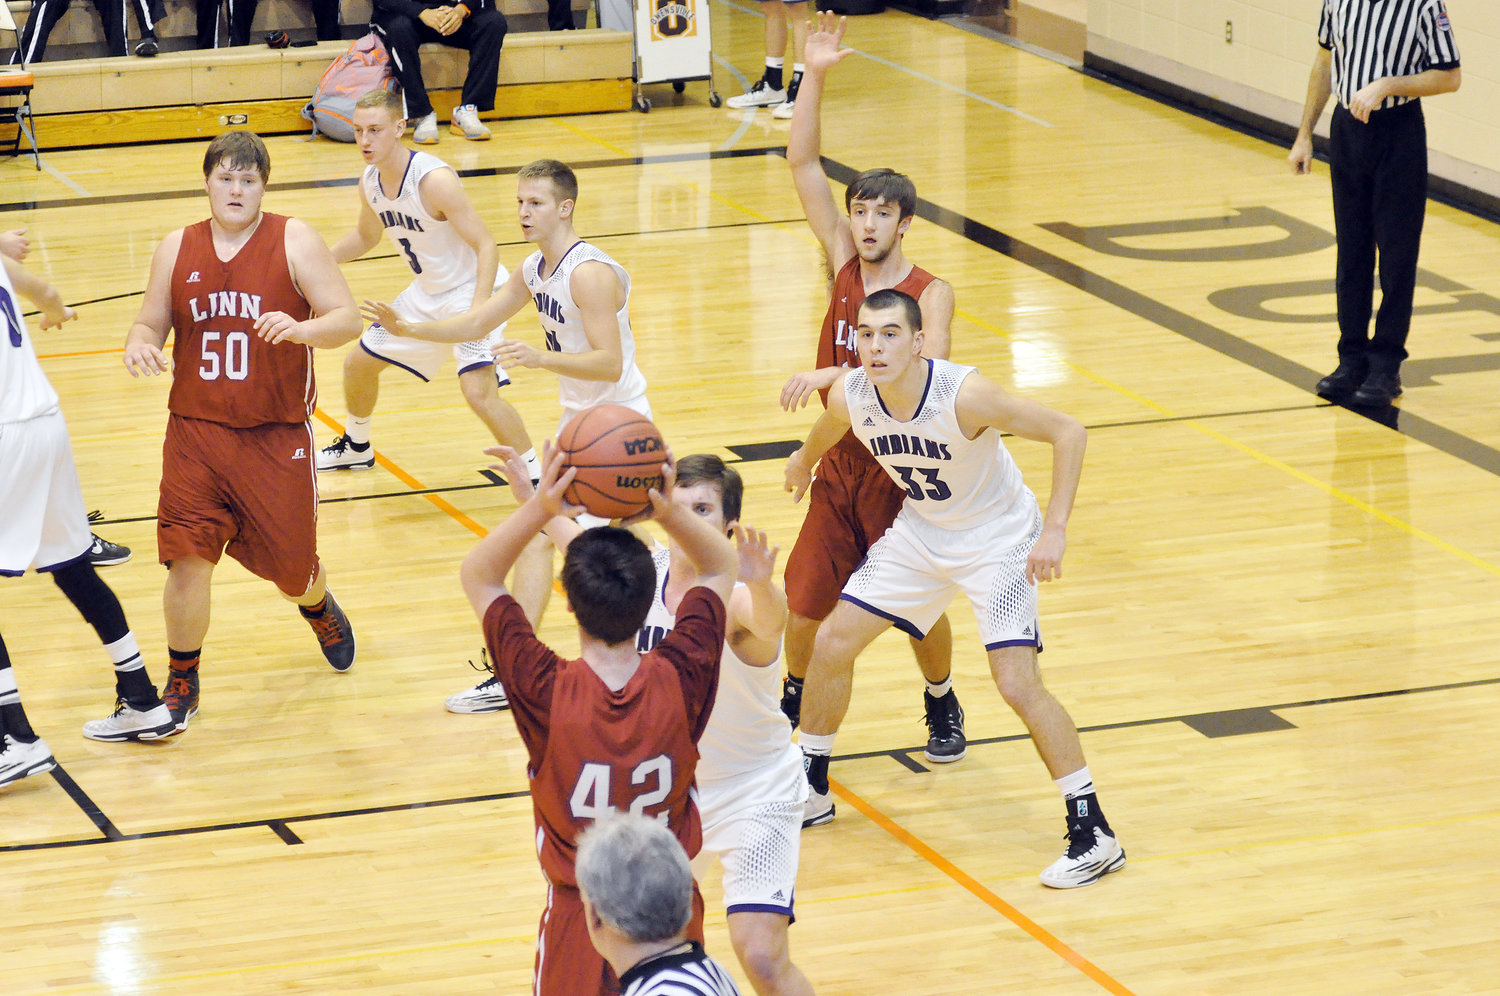 Cullen VanLeer (above, far right) establishes defensive position against Linn's Wildcats during the 2015 Owensville Tournament in which he won the last of his four Most Valuable Player (MVP) awards. In addition to being the lone four-time MVP during the 31-year history of the tournament, VanLeer is currently the tournament's all-time leading scorer with 271 points over four seasons. Along with VanLeer, former Sullivan Eagle basketball player Nathan Whittaker is the tournament's lone other player to make the All-Tournament Team four times.